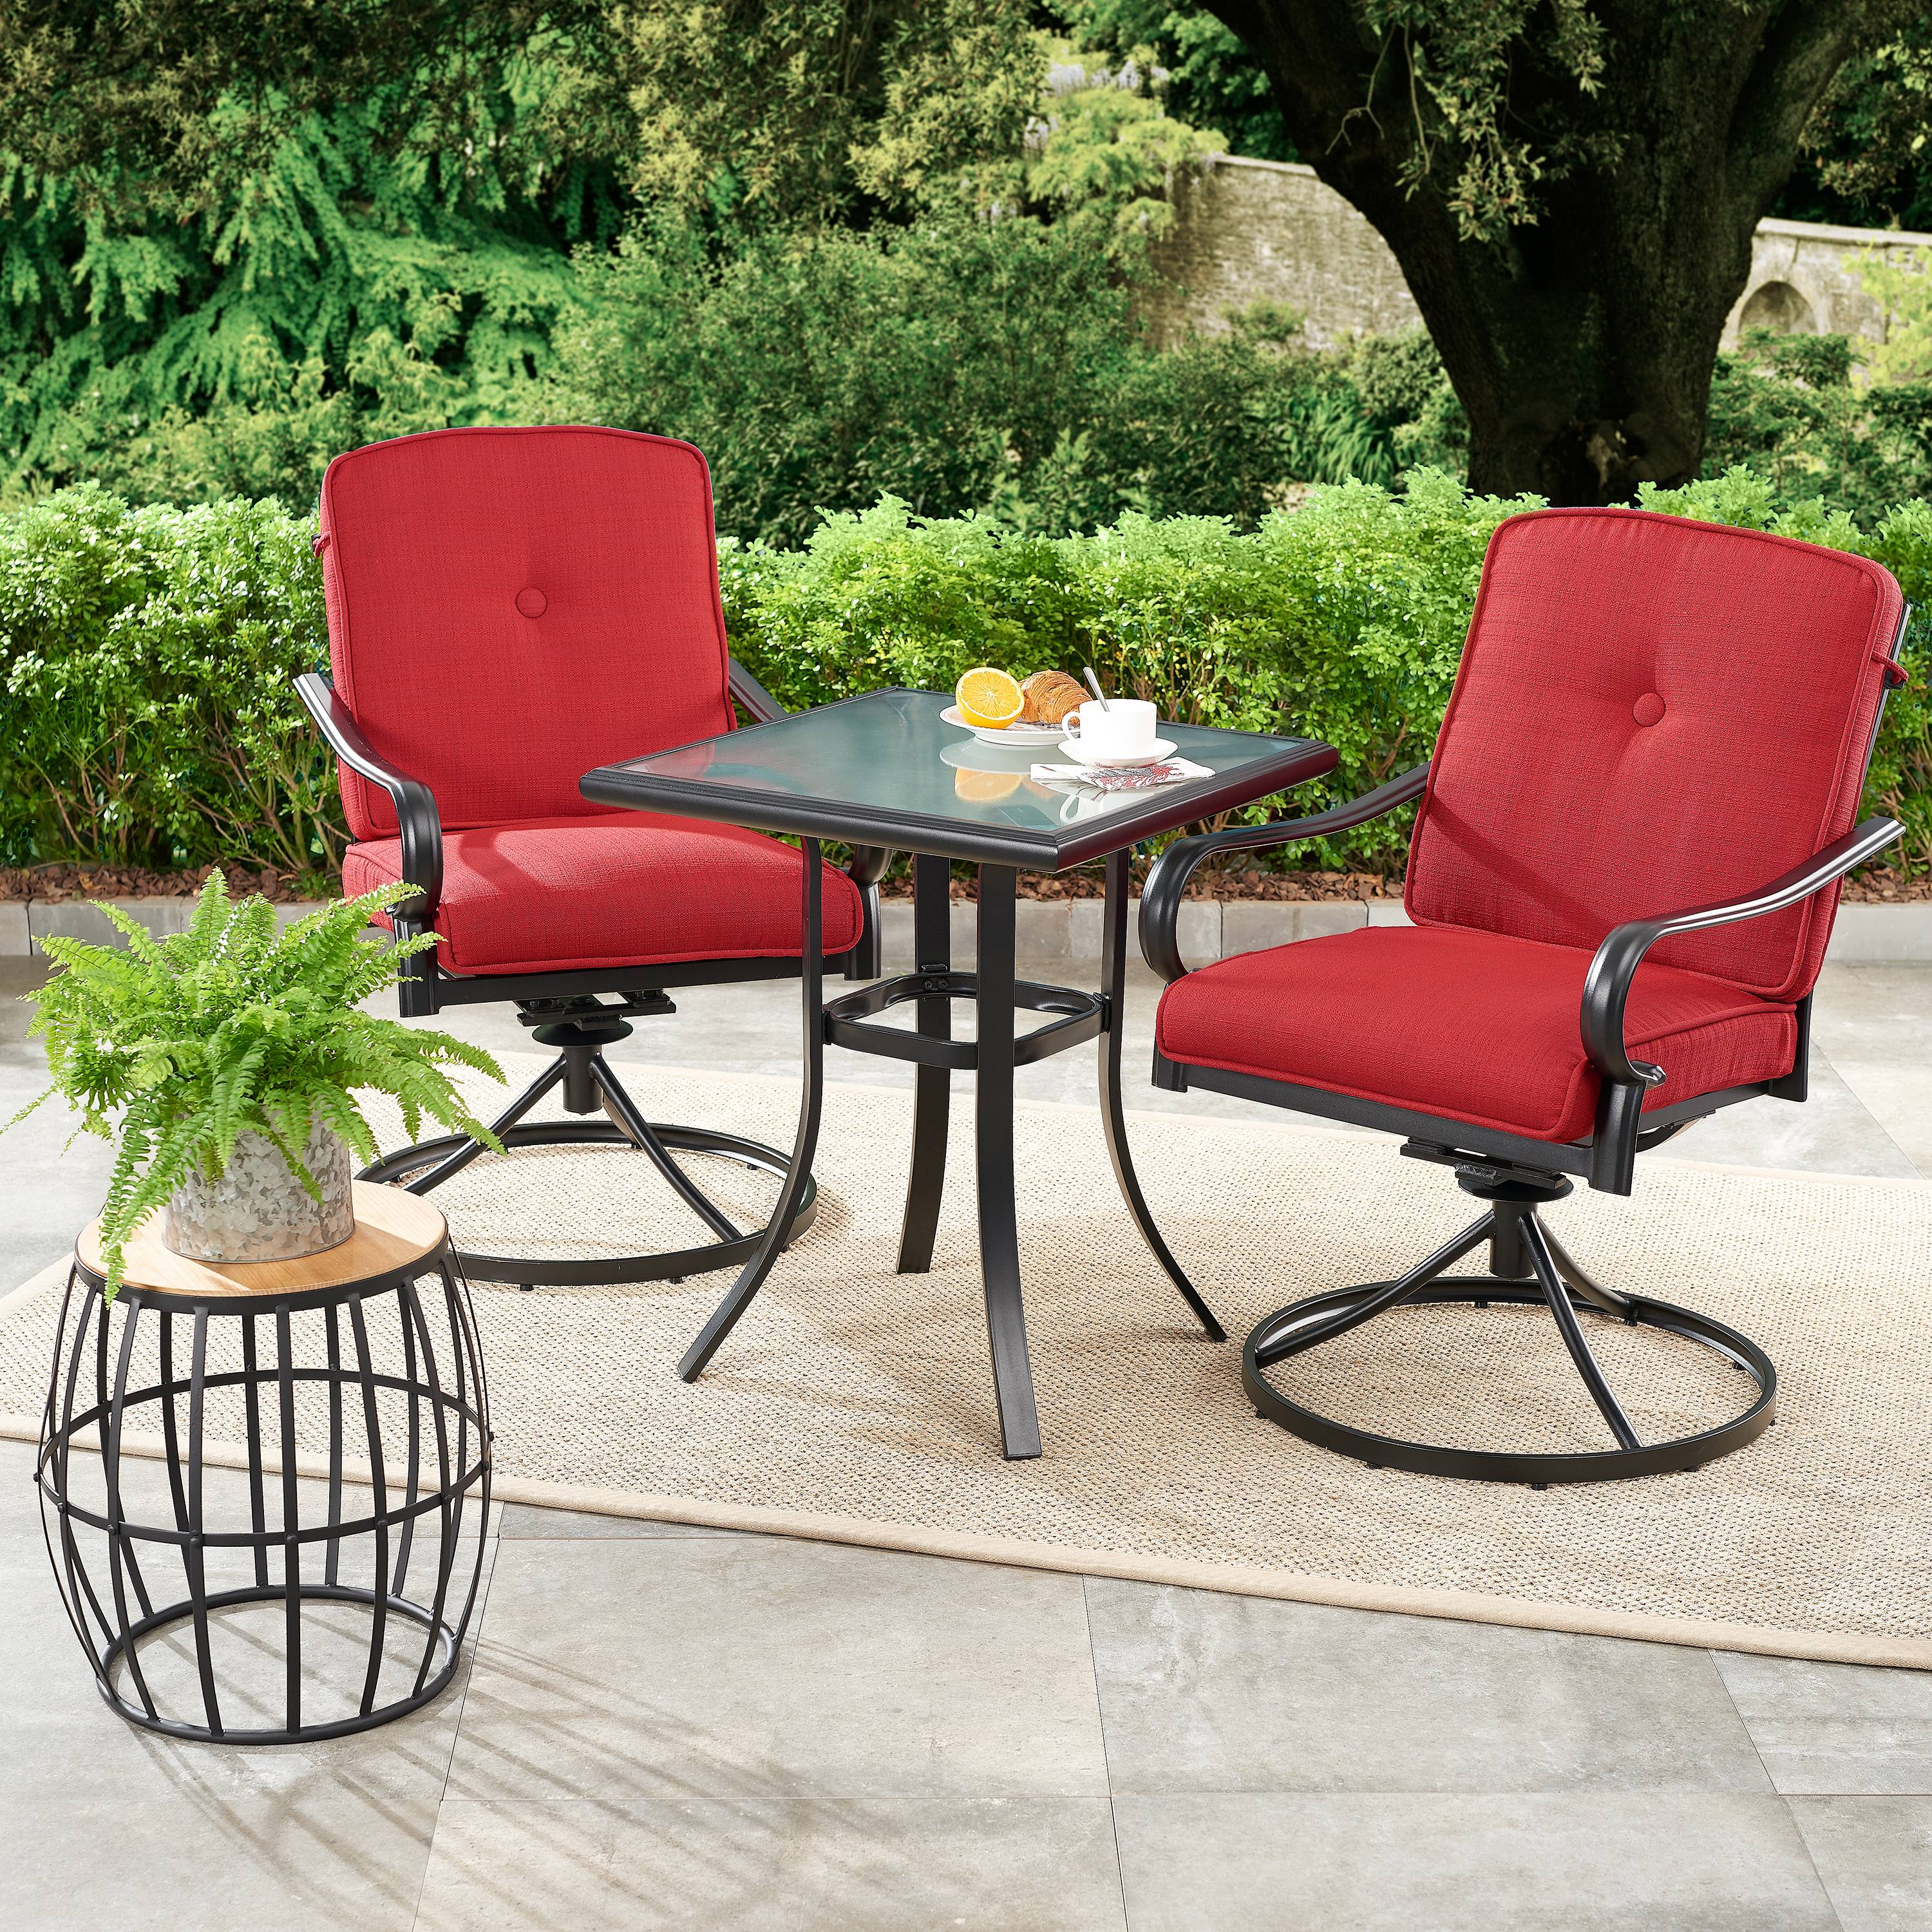 mainstays carson creek 3 piece patio bistro set with brick red cushions